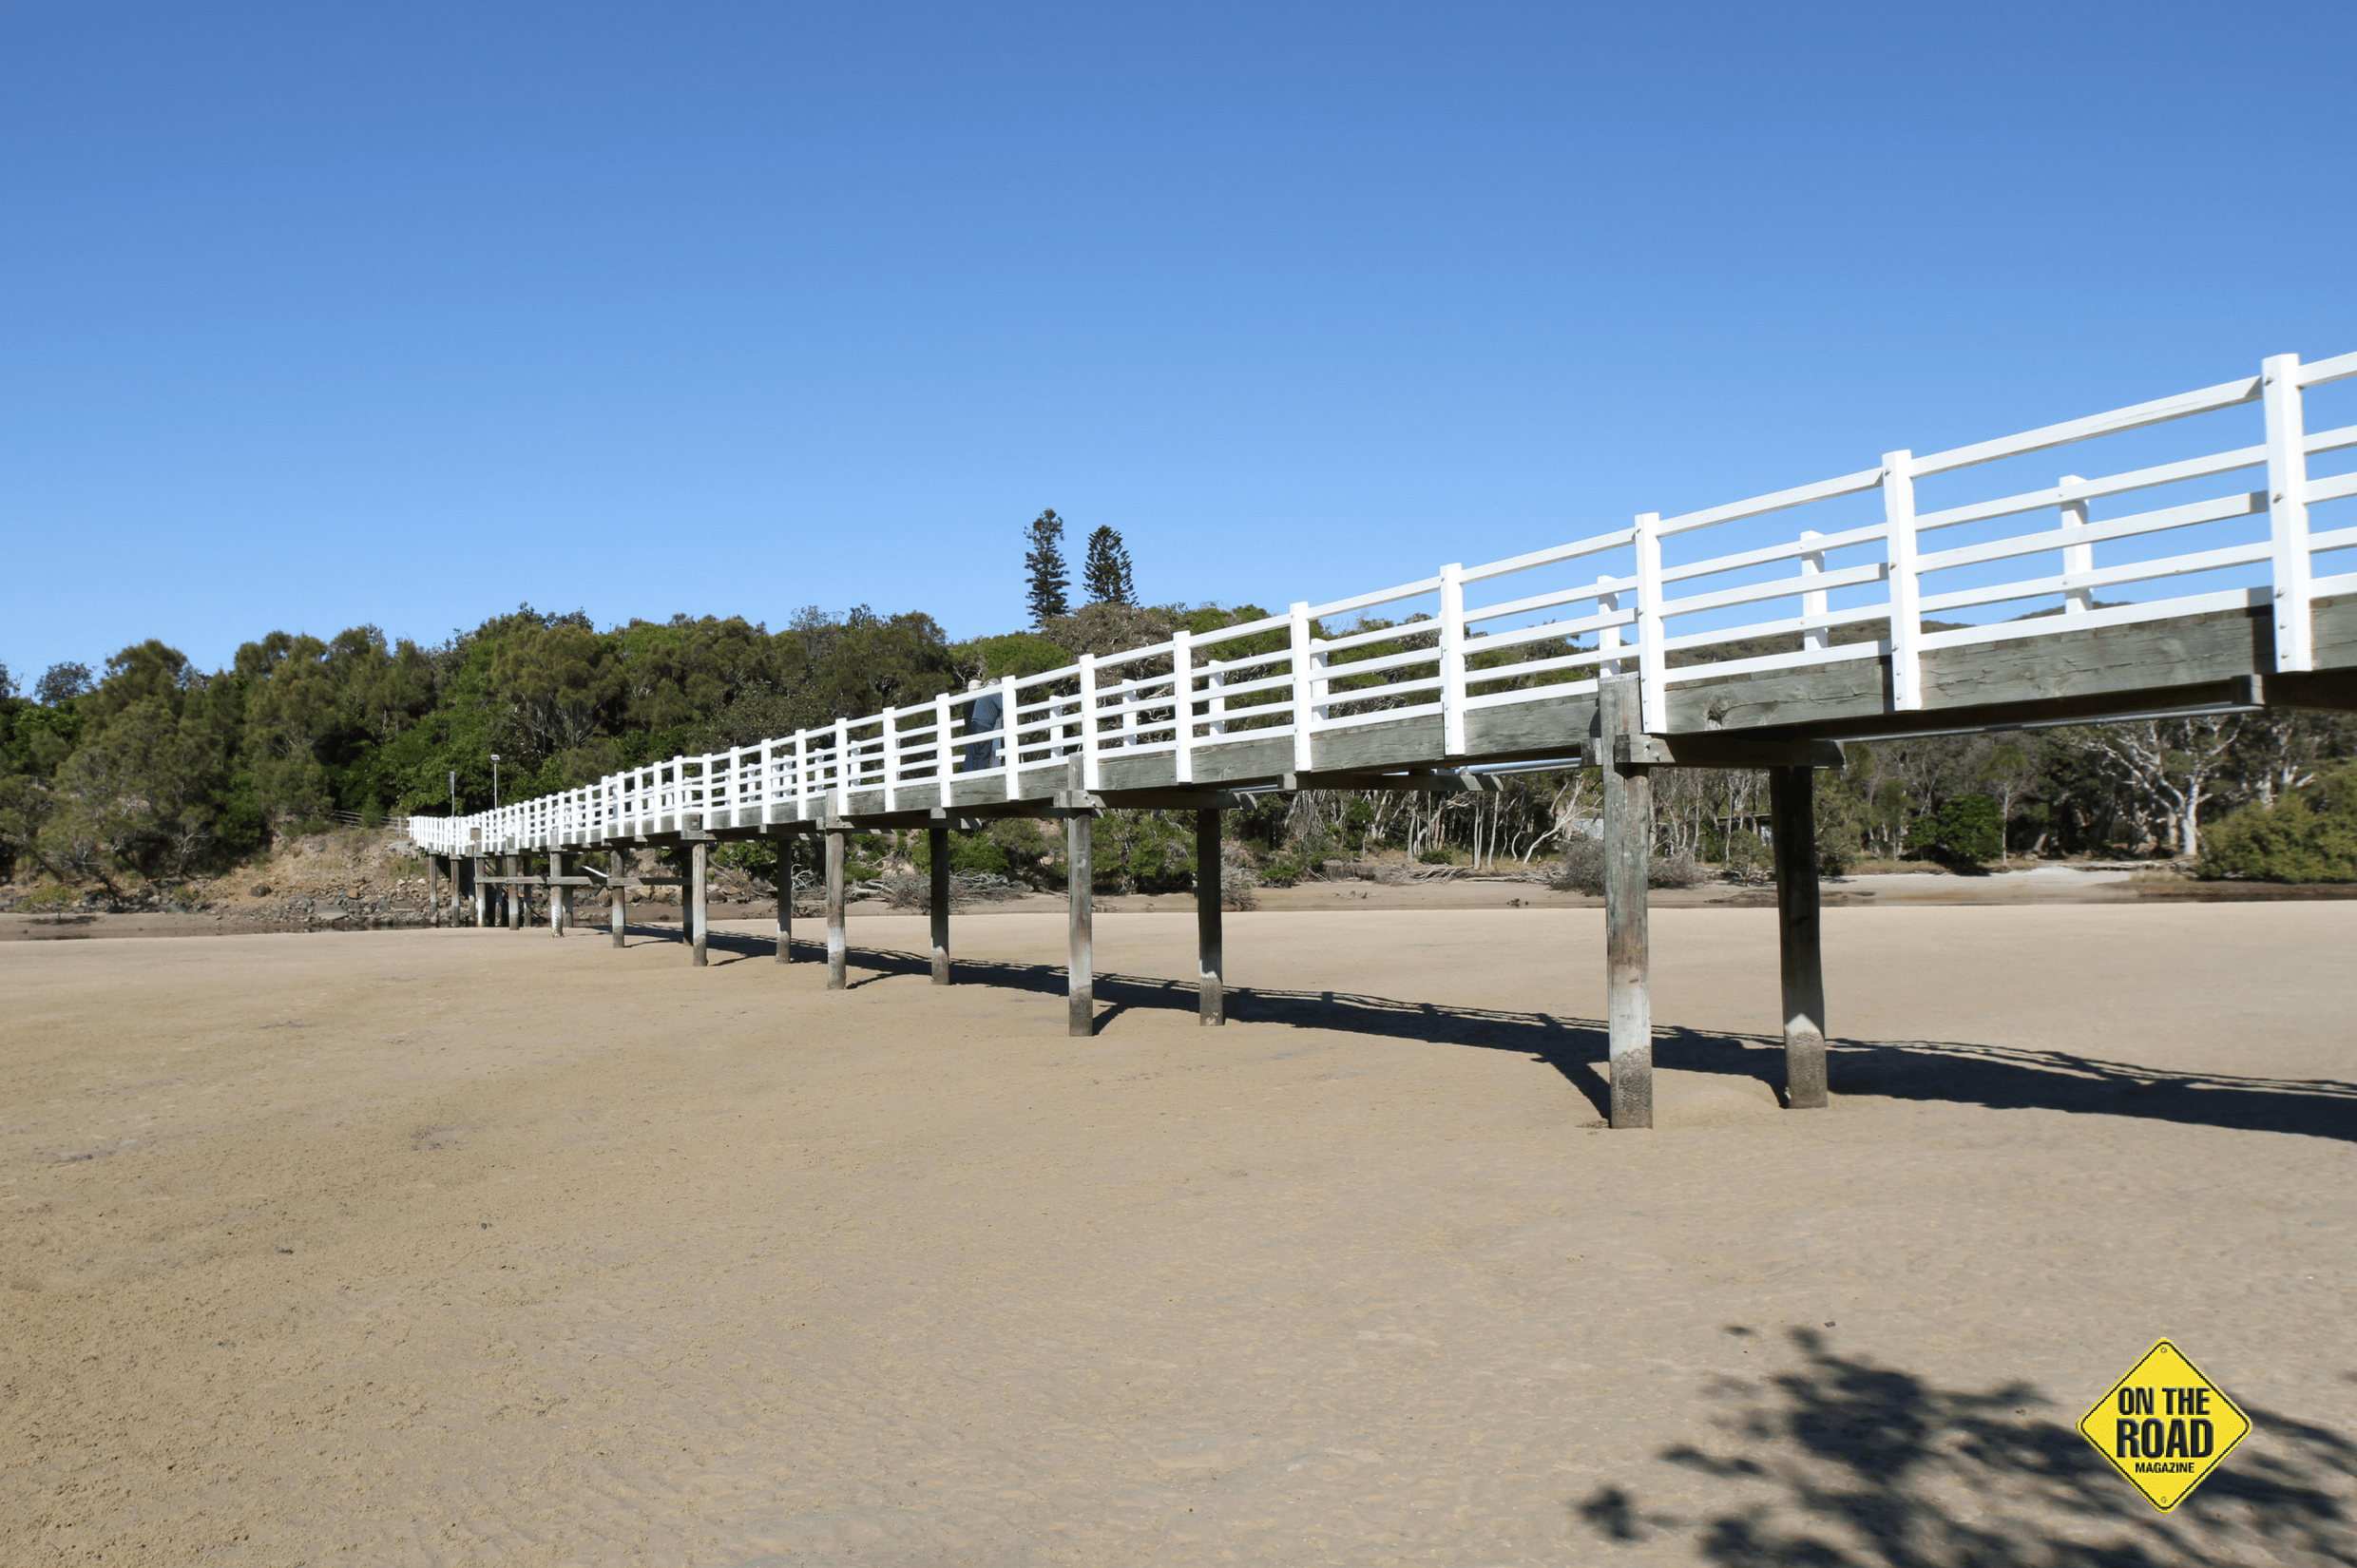 The foot bridge gives you easy access